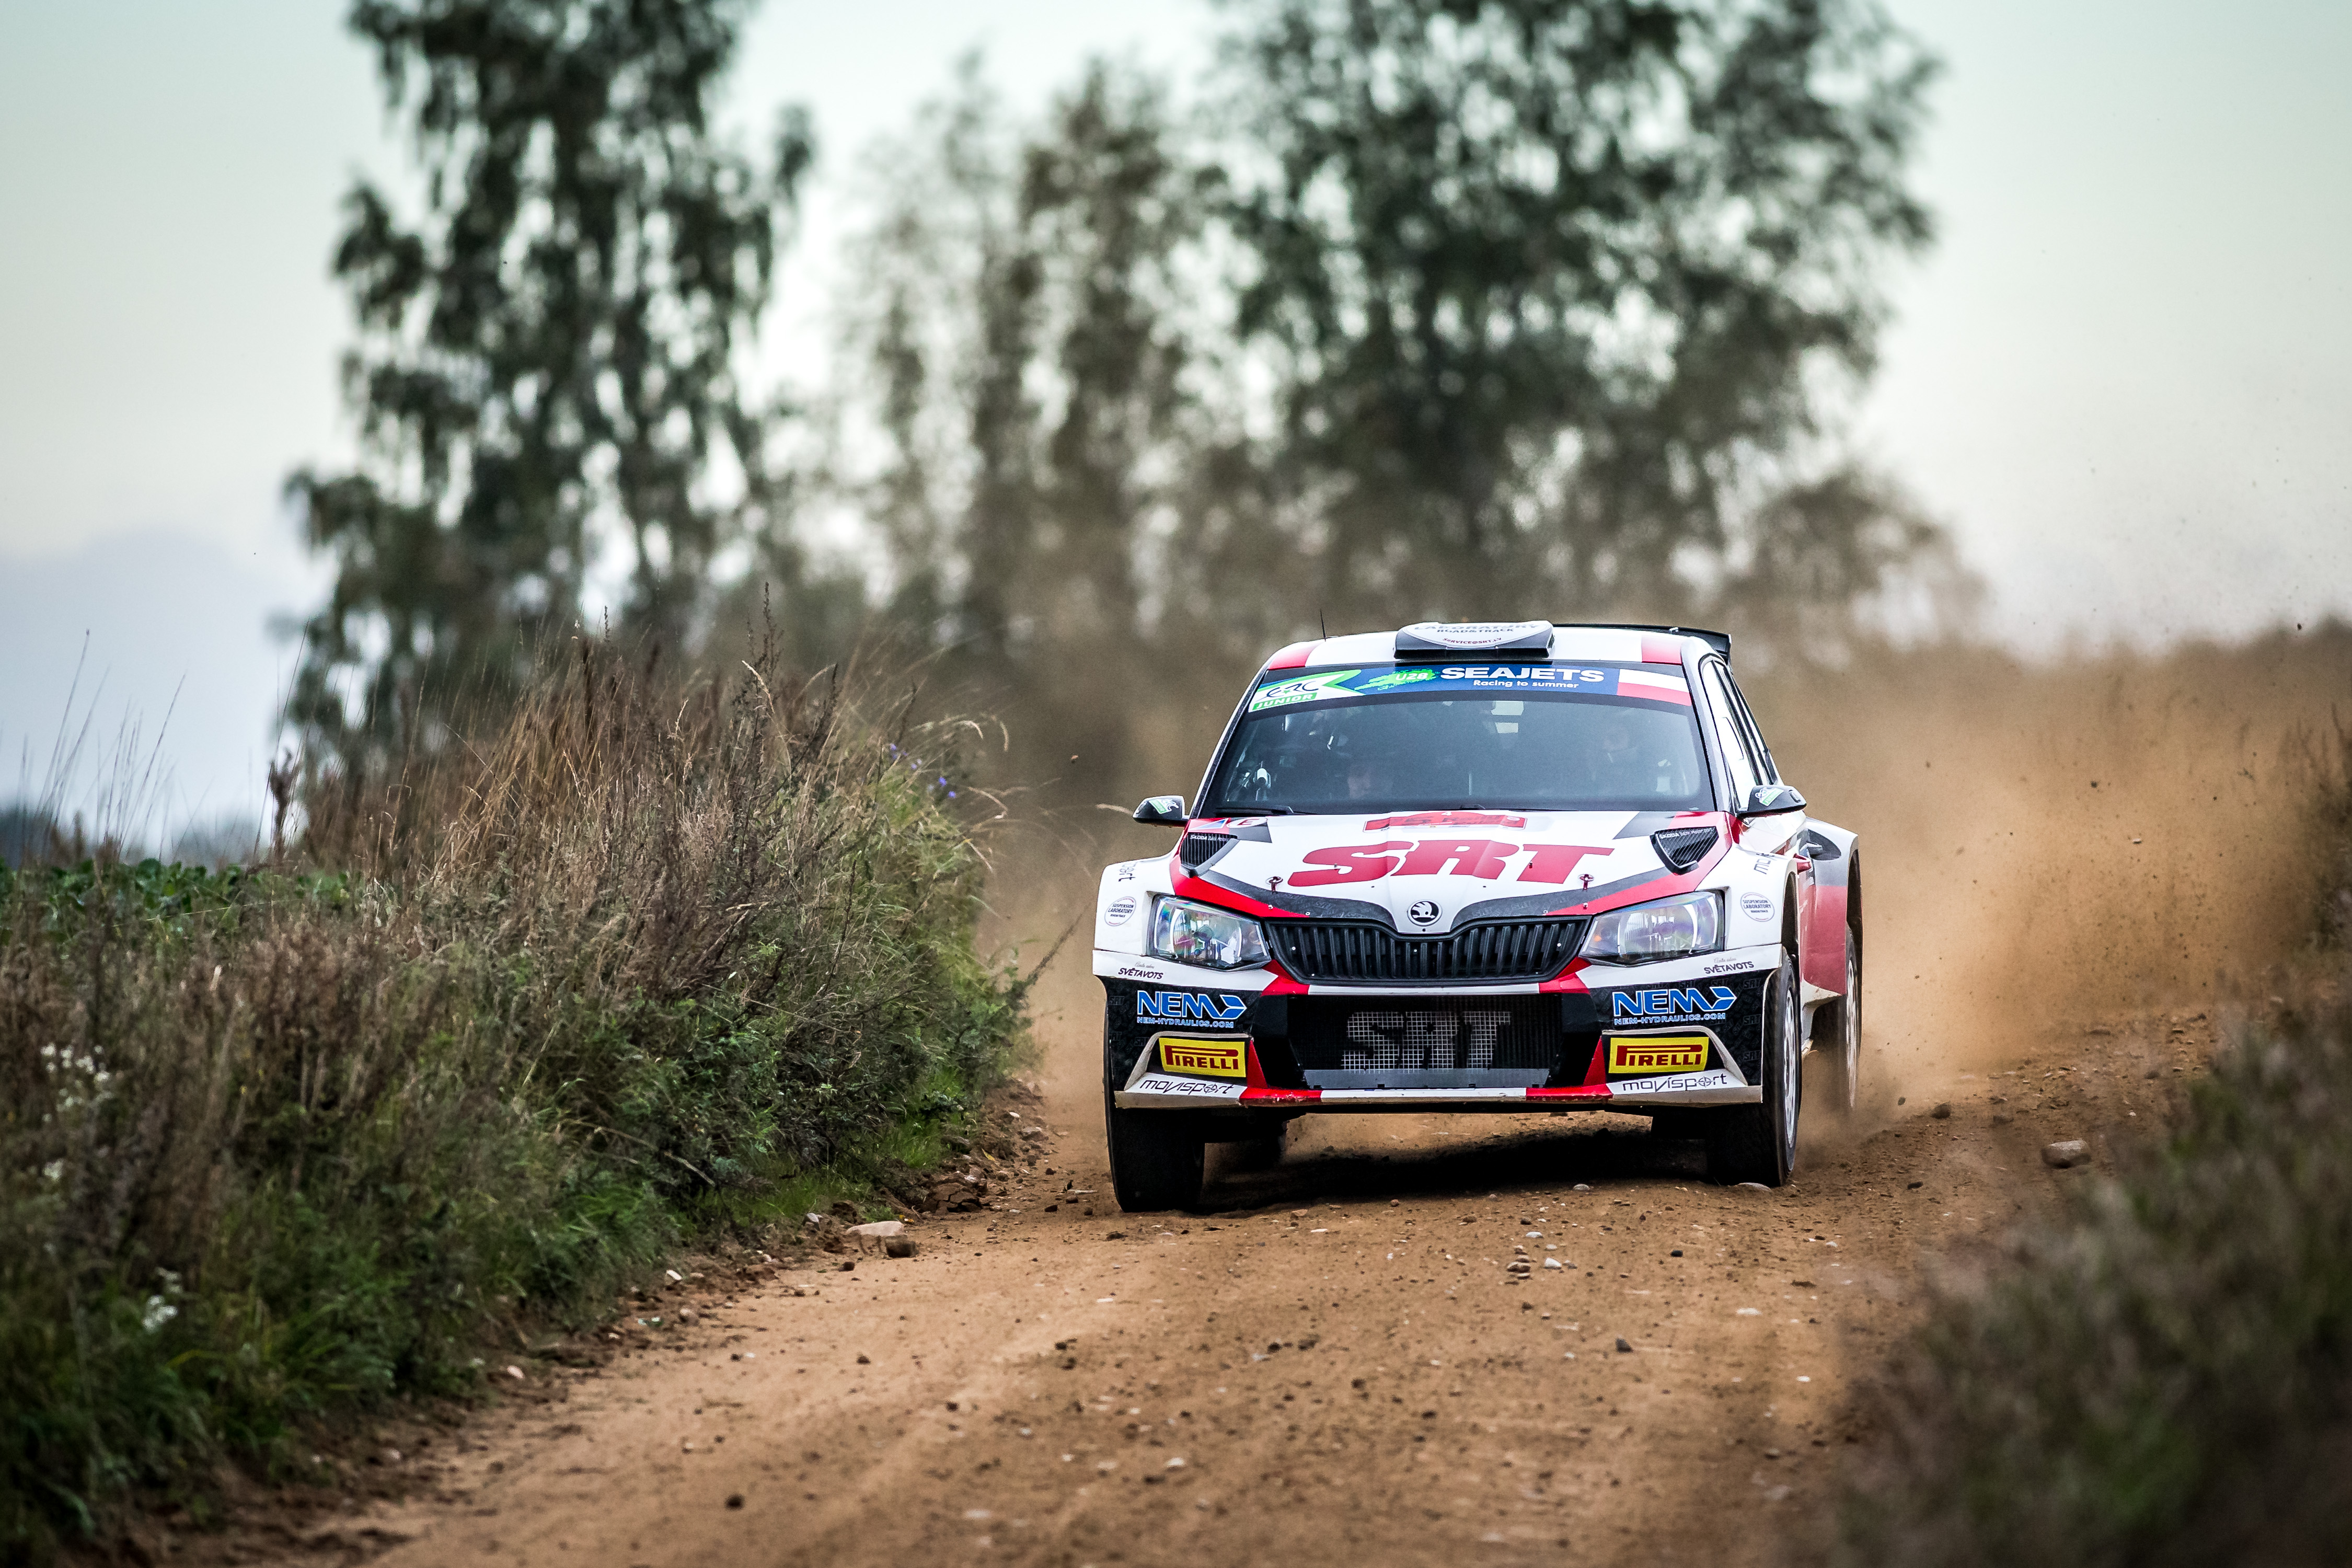 Season recap #7: Gryazin in Pole position with sensational ERC victory